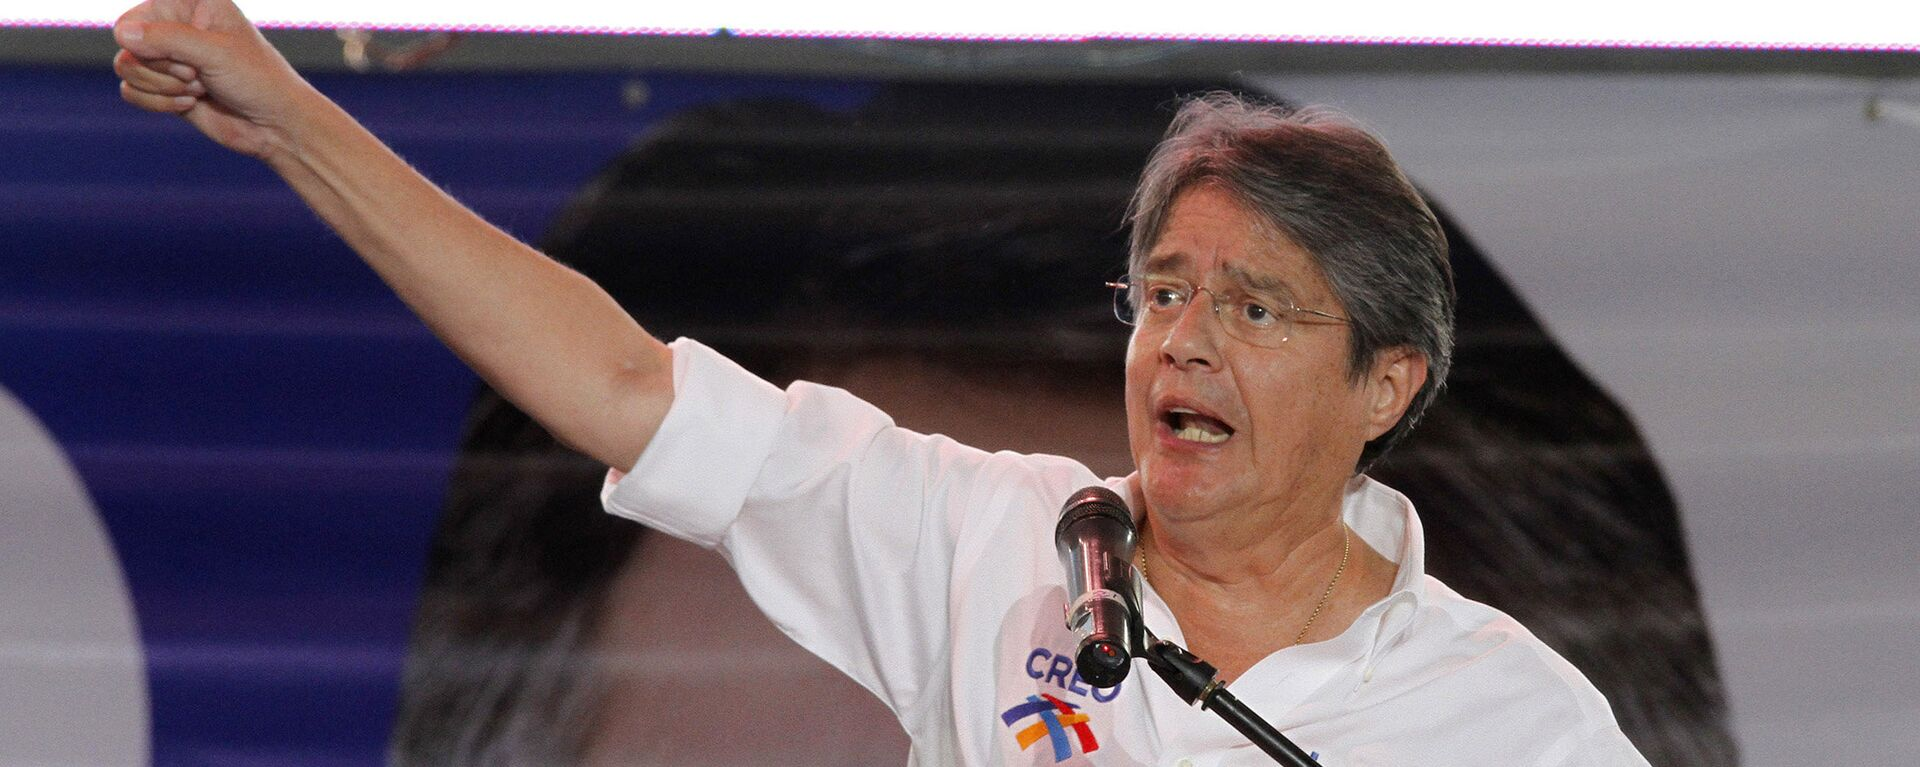 Opposition presidential candidate of the Movement Creando Oportunidades, CREO, party, Guillermo Lasso, delivers a speech during his closing campaign rally in Guayaquil, Ecuador, Thursday, Feb. 14, 2013. - Sputnik Mundo, 1920, 03.10.2021